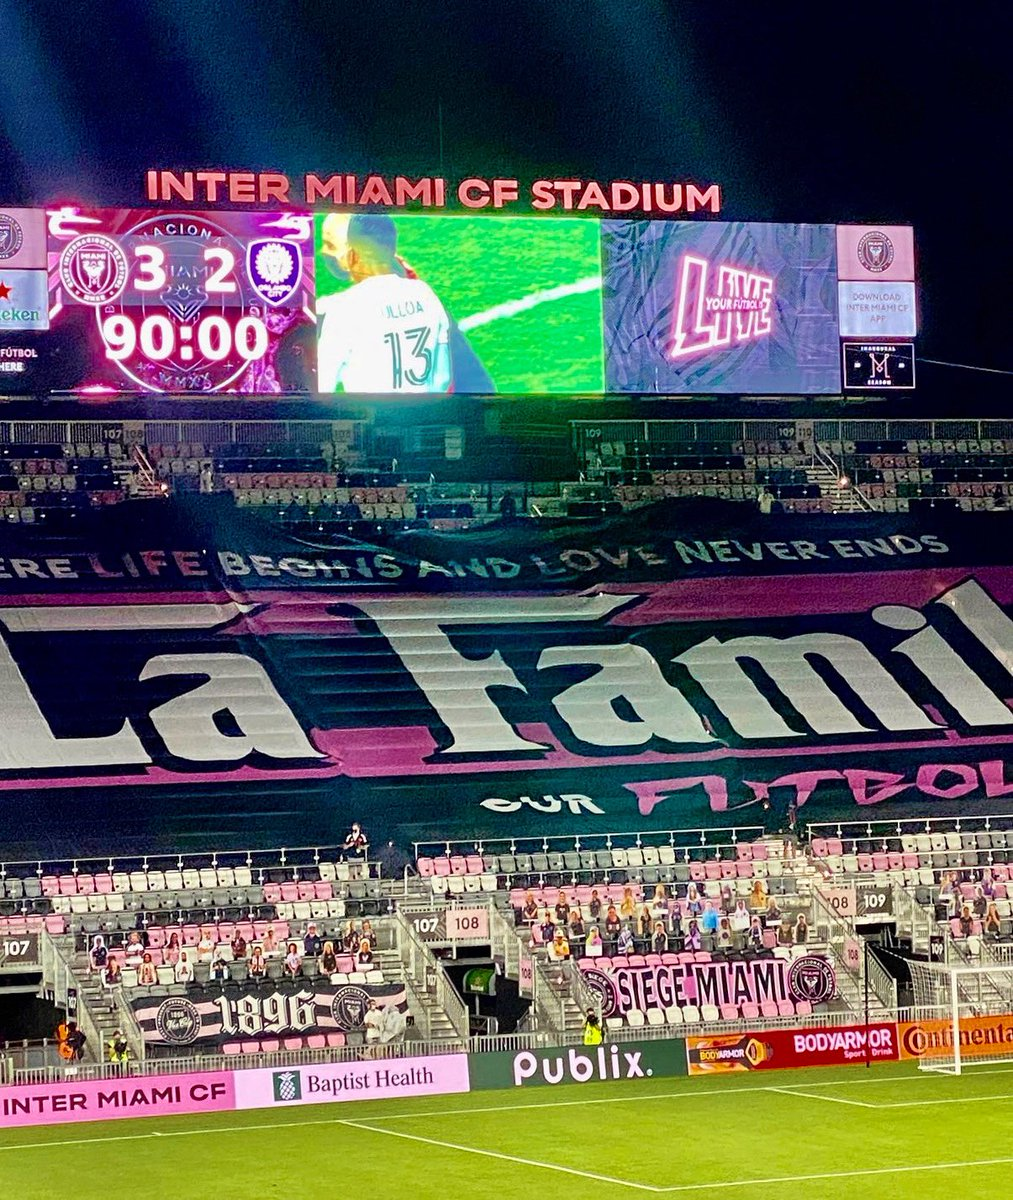 Starting our history with a BANG 💥 Well done la Familia @InterMiamiCF 💪🏾 #InterMiamiCF https://t.co/tqIv1IOkYp